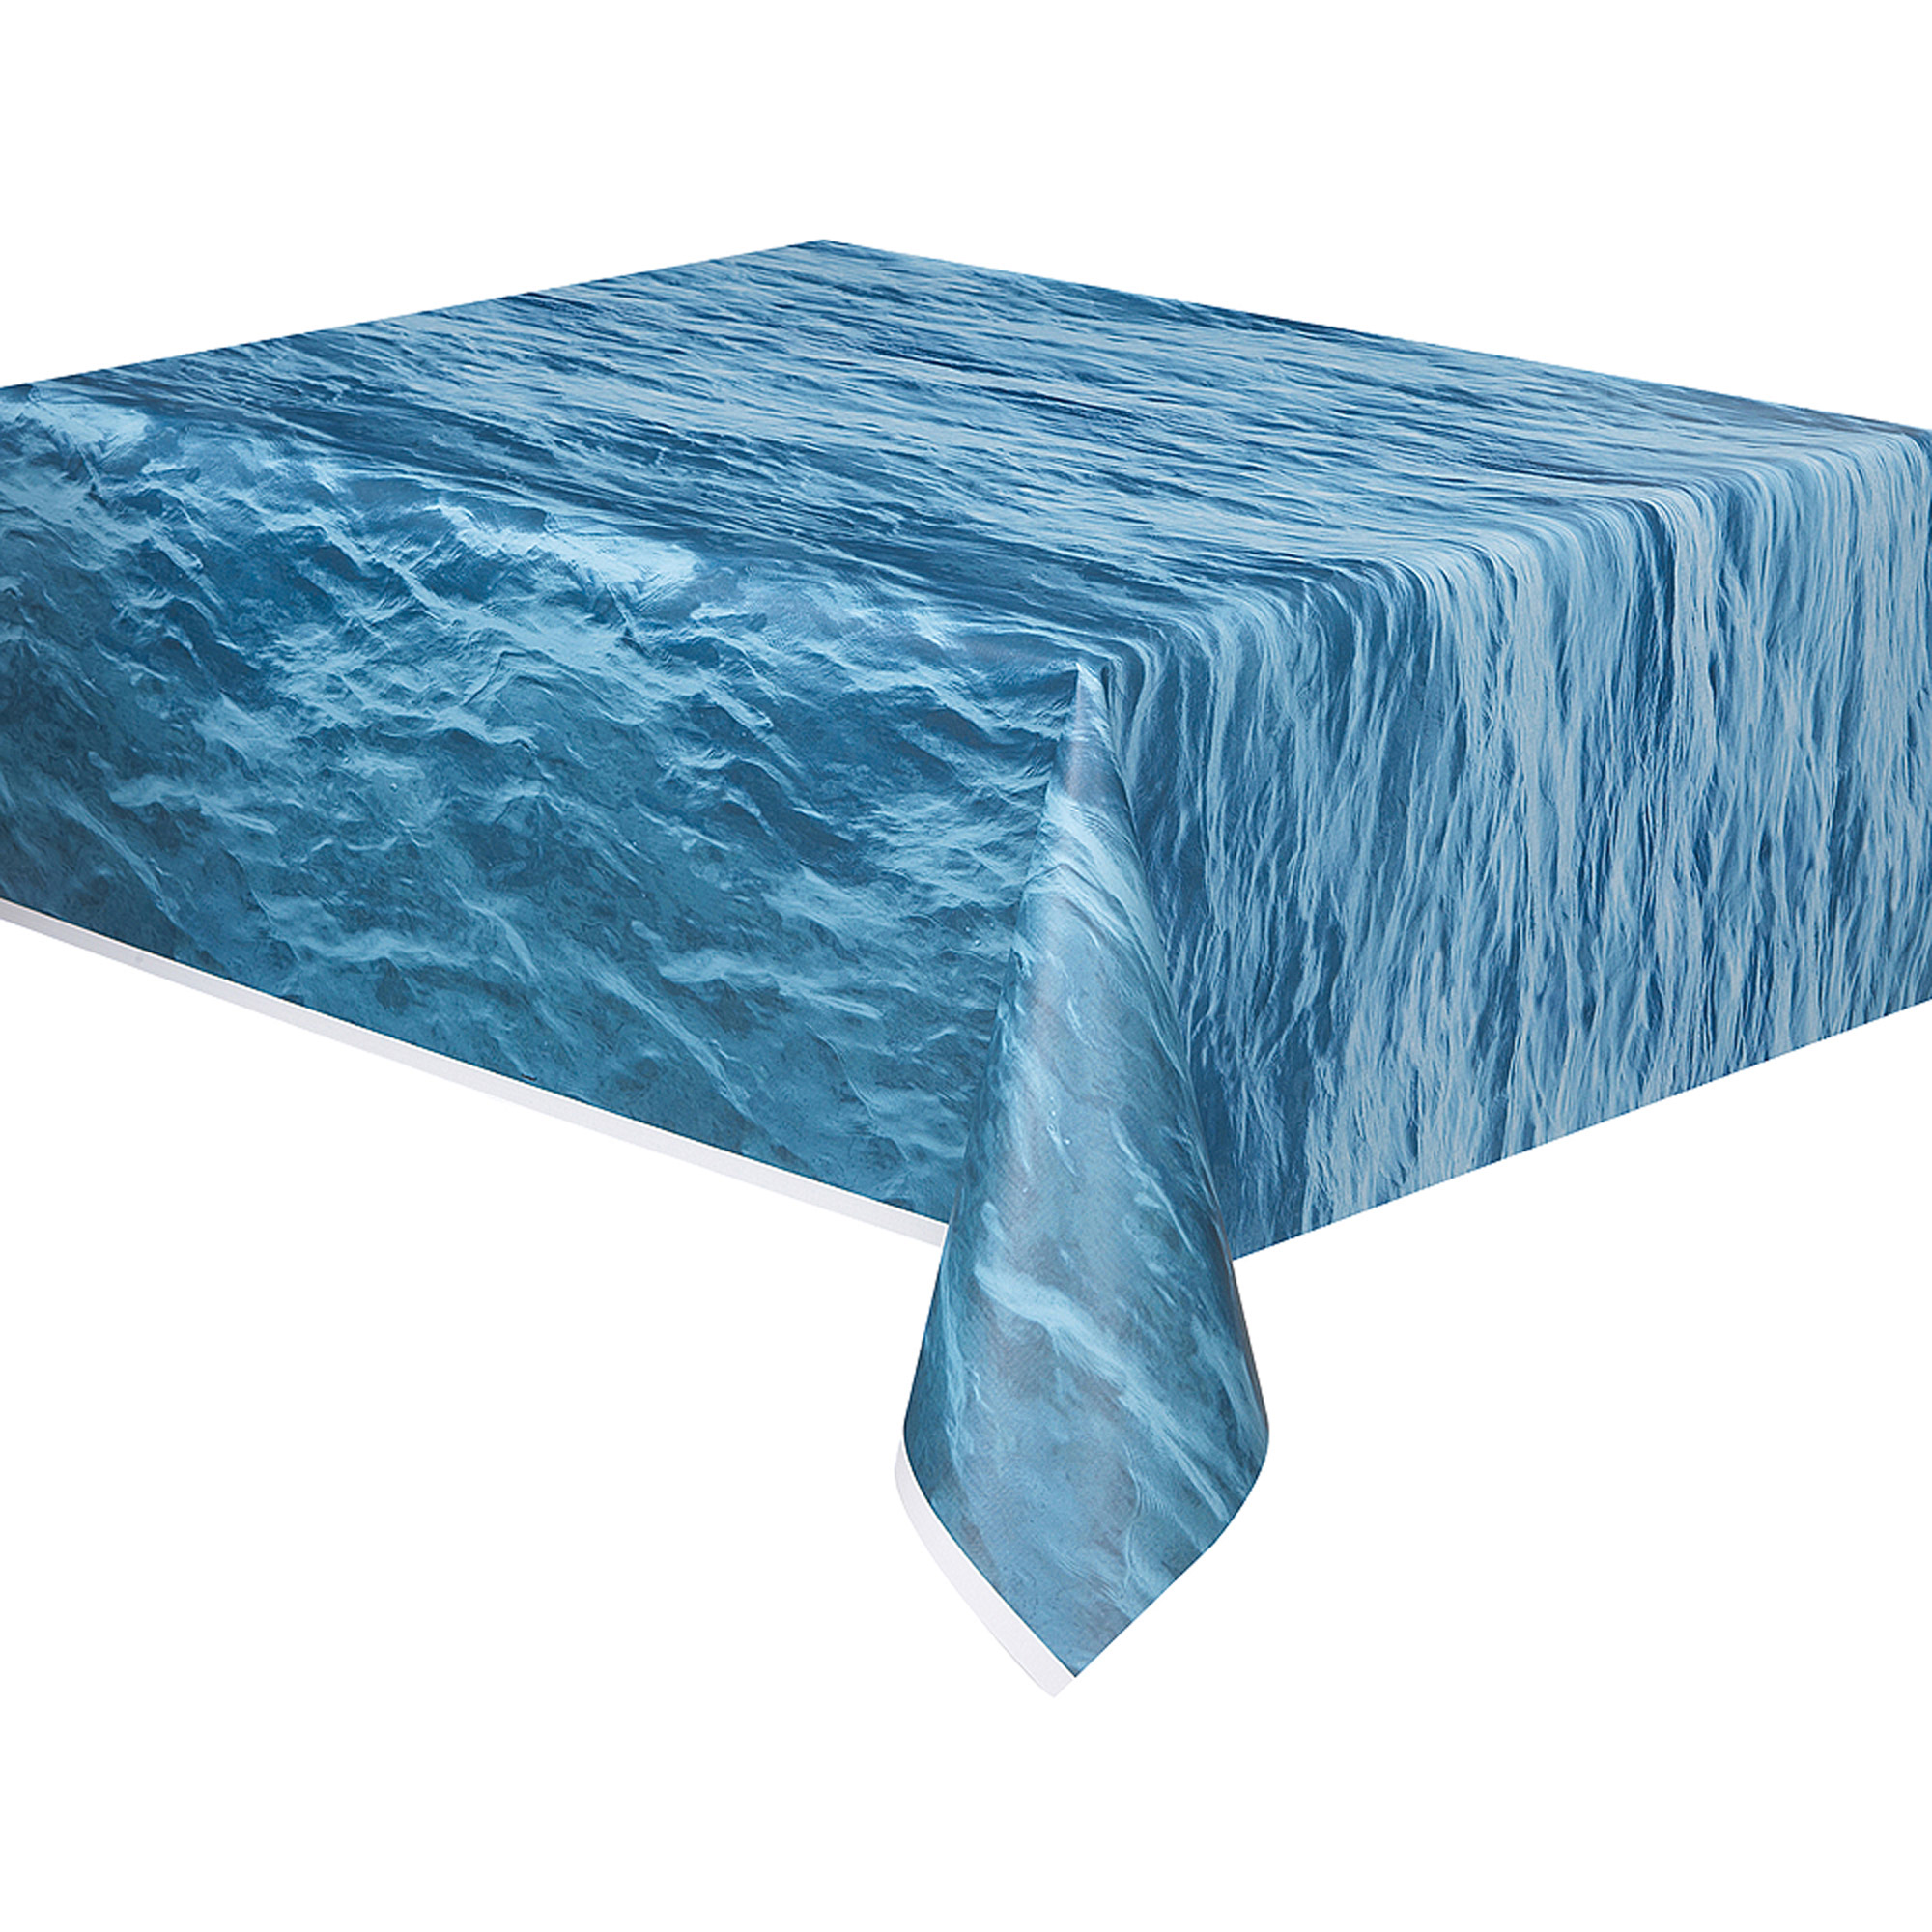 "Plastic Ocean Waves Printed Table Cover, 108"" x 54"""